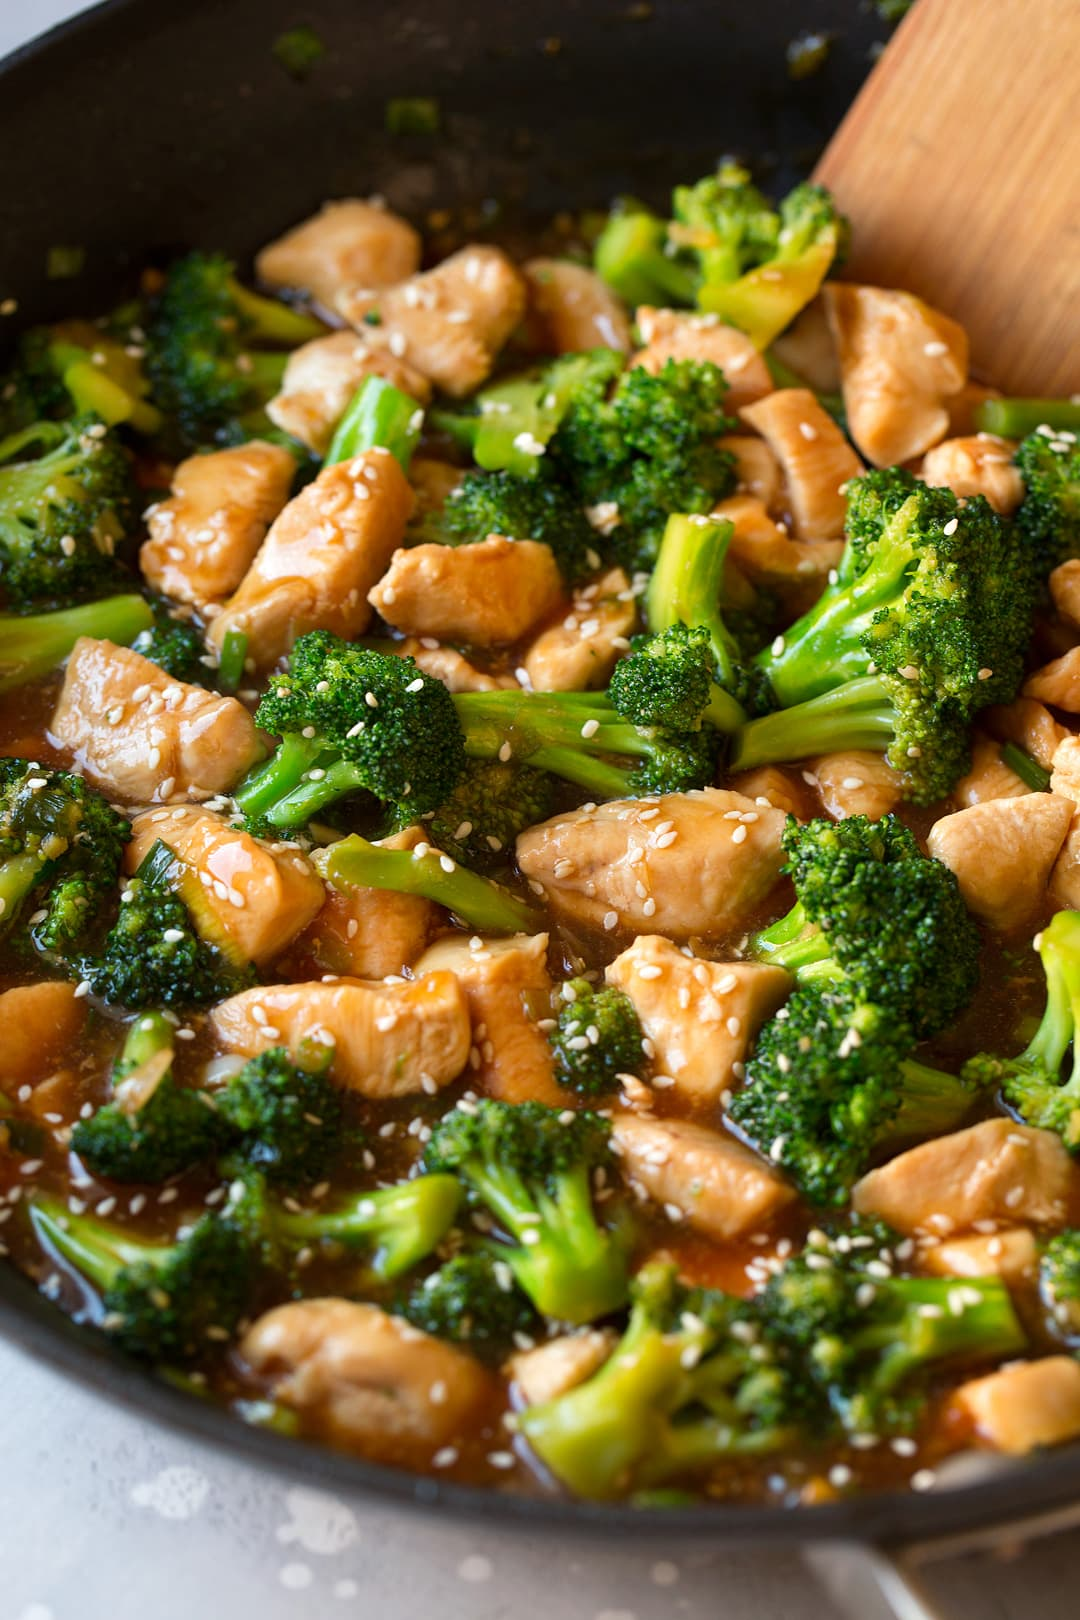 Chinese Chicken And Broccoli Stir-Fry Healthy  Easy - Cooking Classy-2269